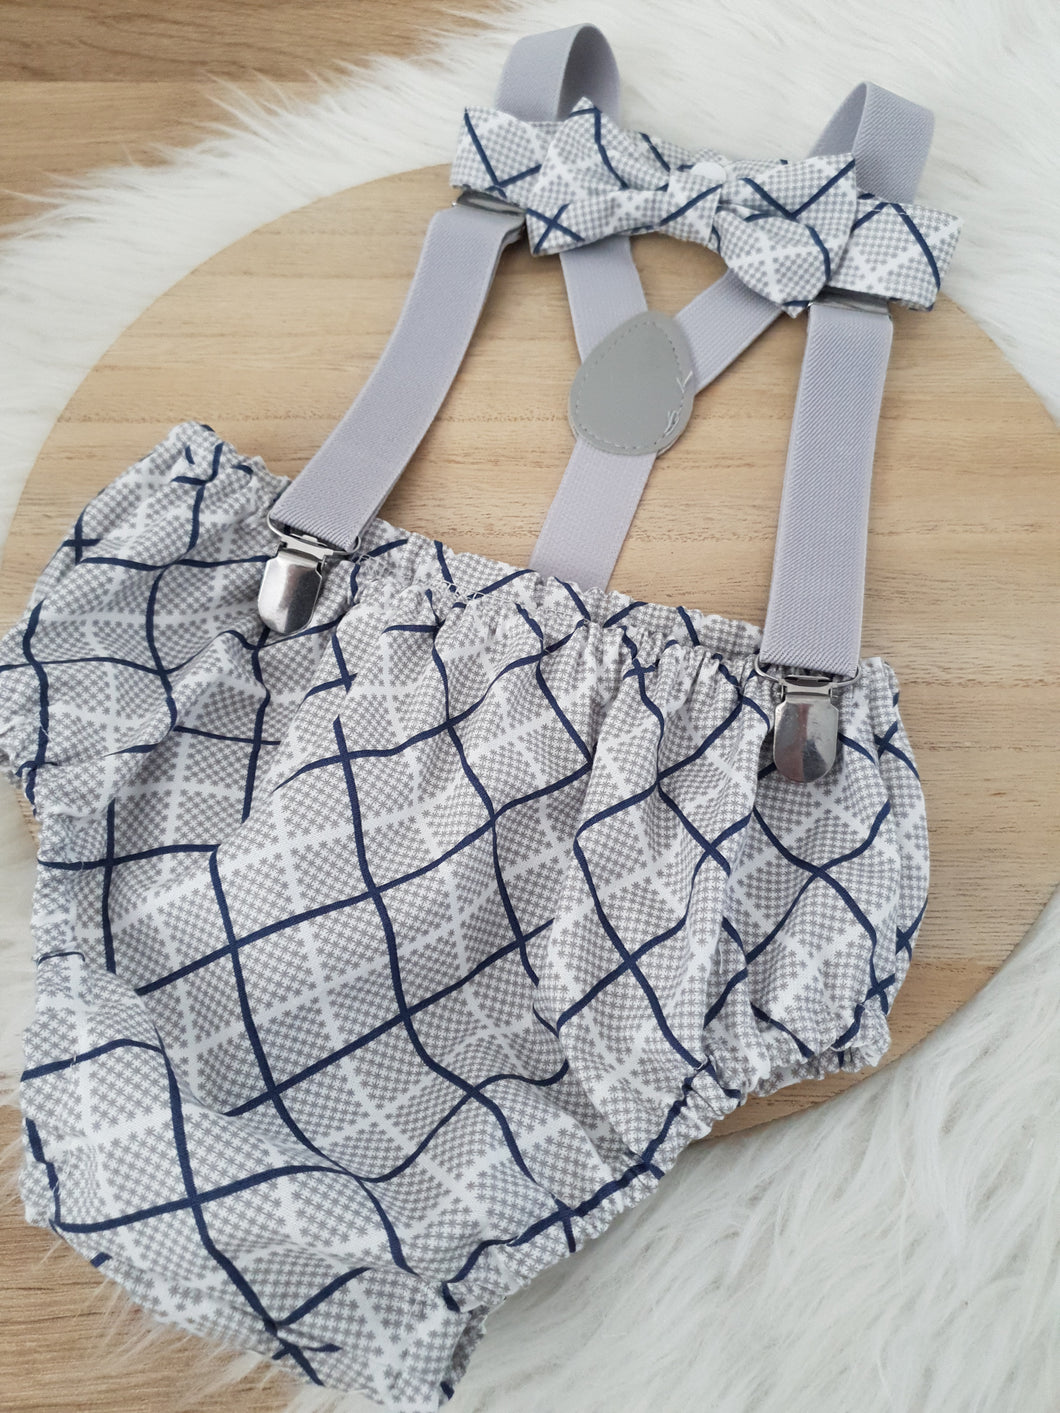 GREY / NAVY PLAID - Boys Cake Smash Outfit, First Birthday Outfit, Size 1, 3 Piece Set